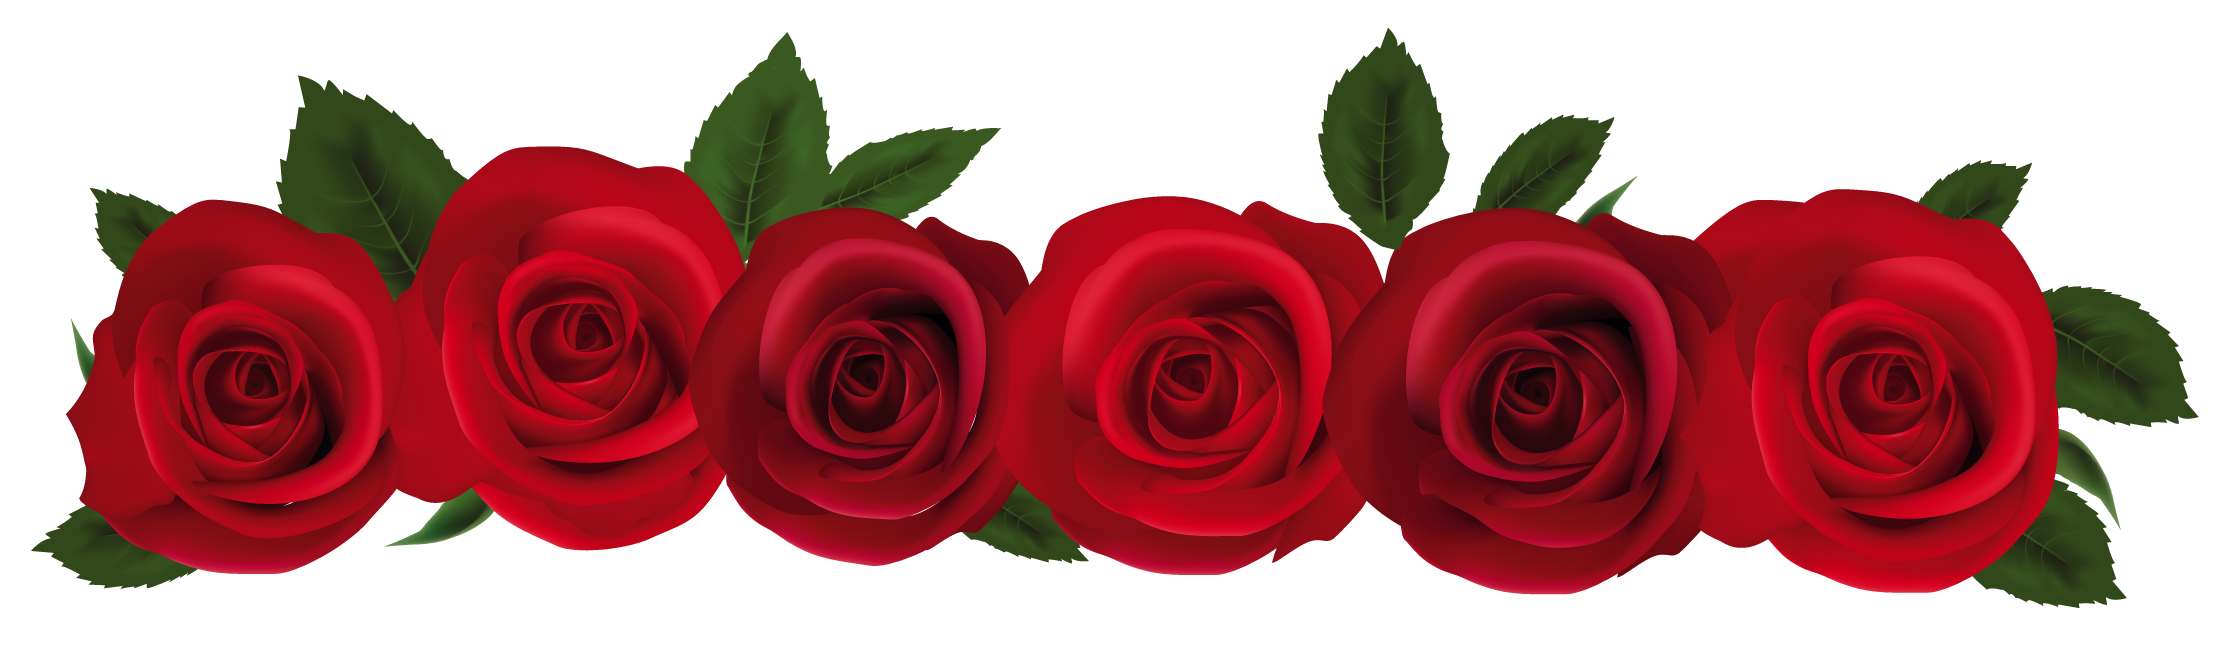 Rose vine png. Red roses clipart gallery